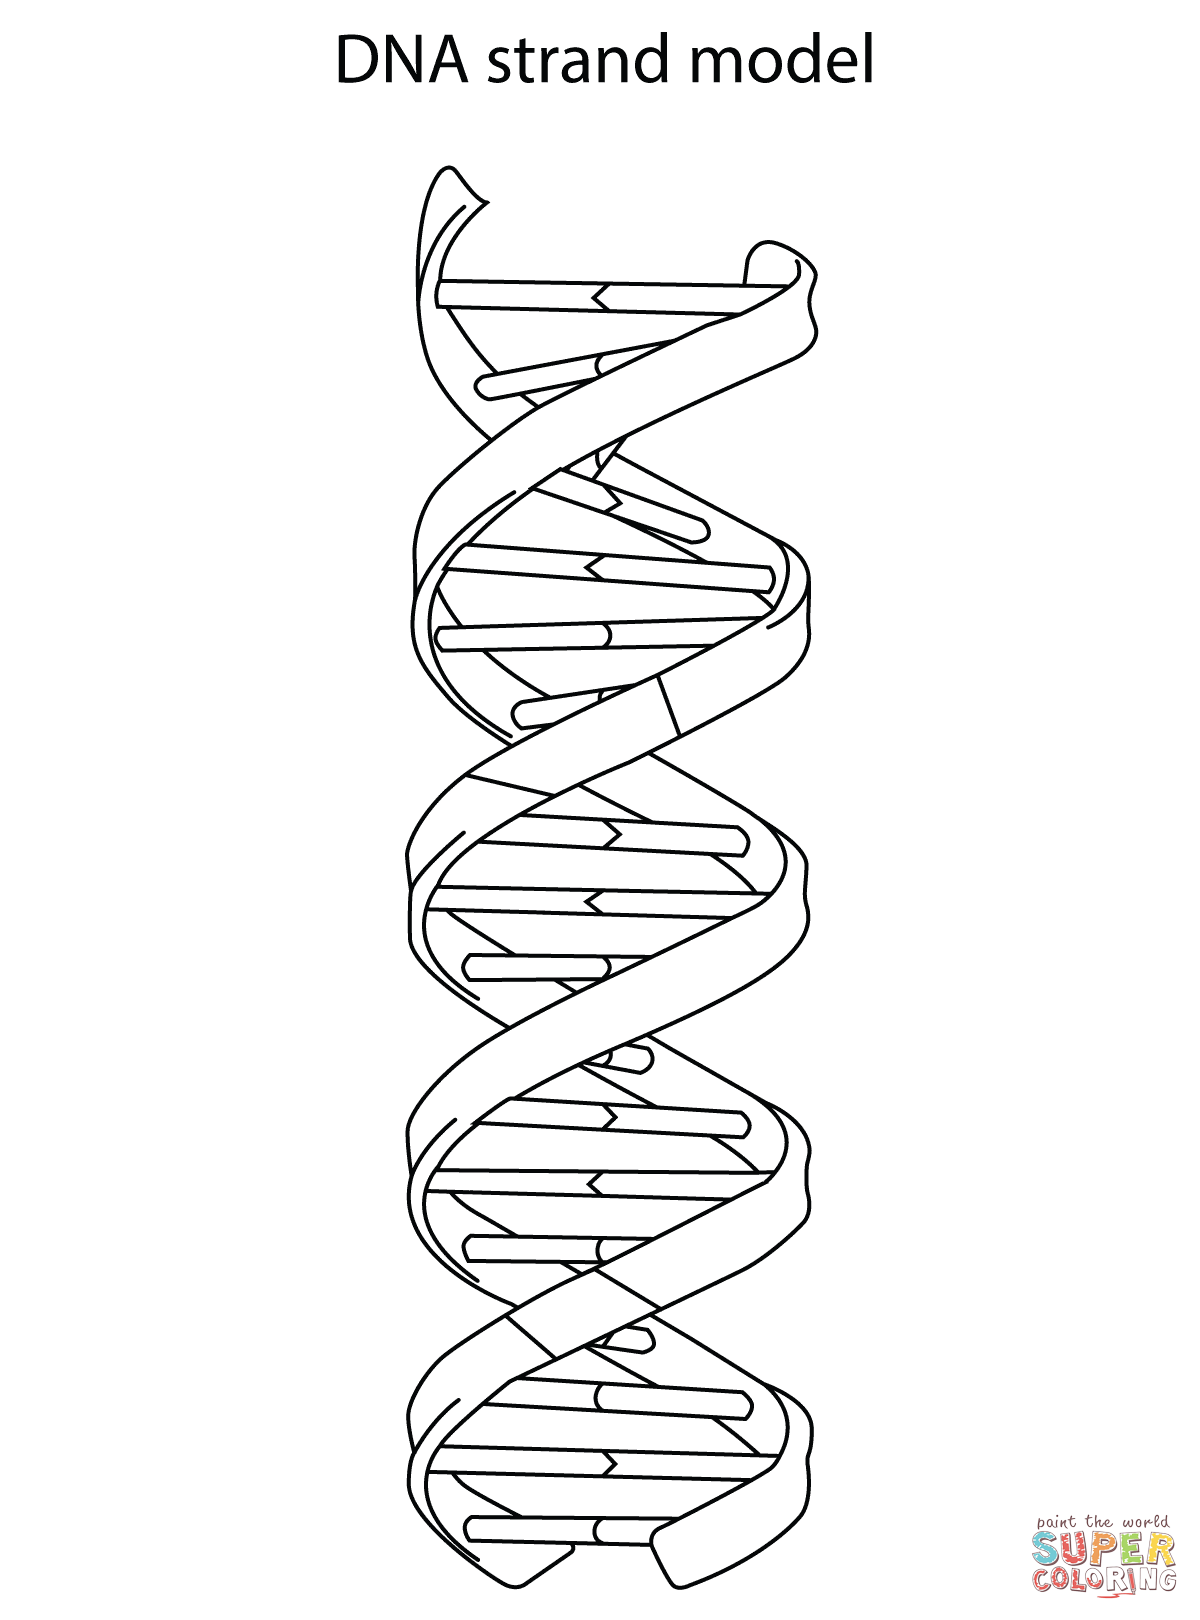 Dna Strand Model Coloring Page